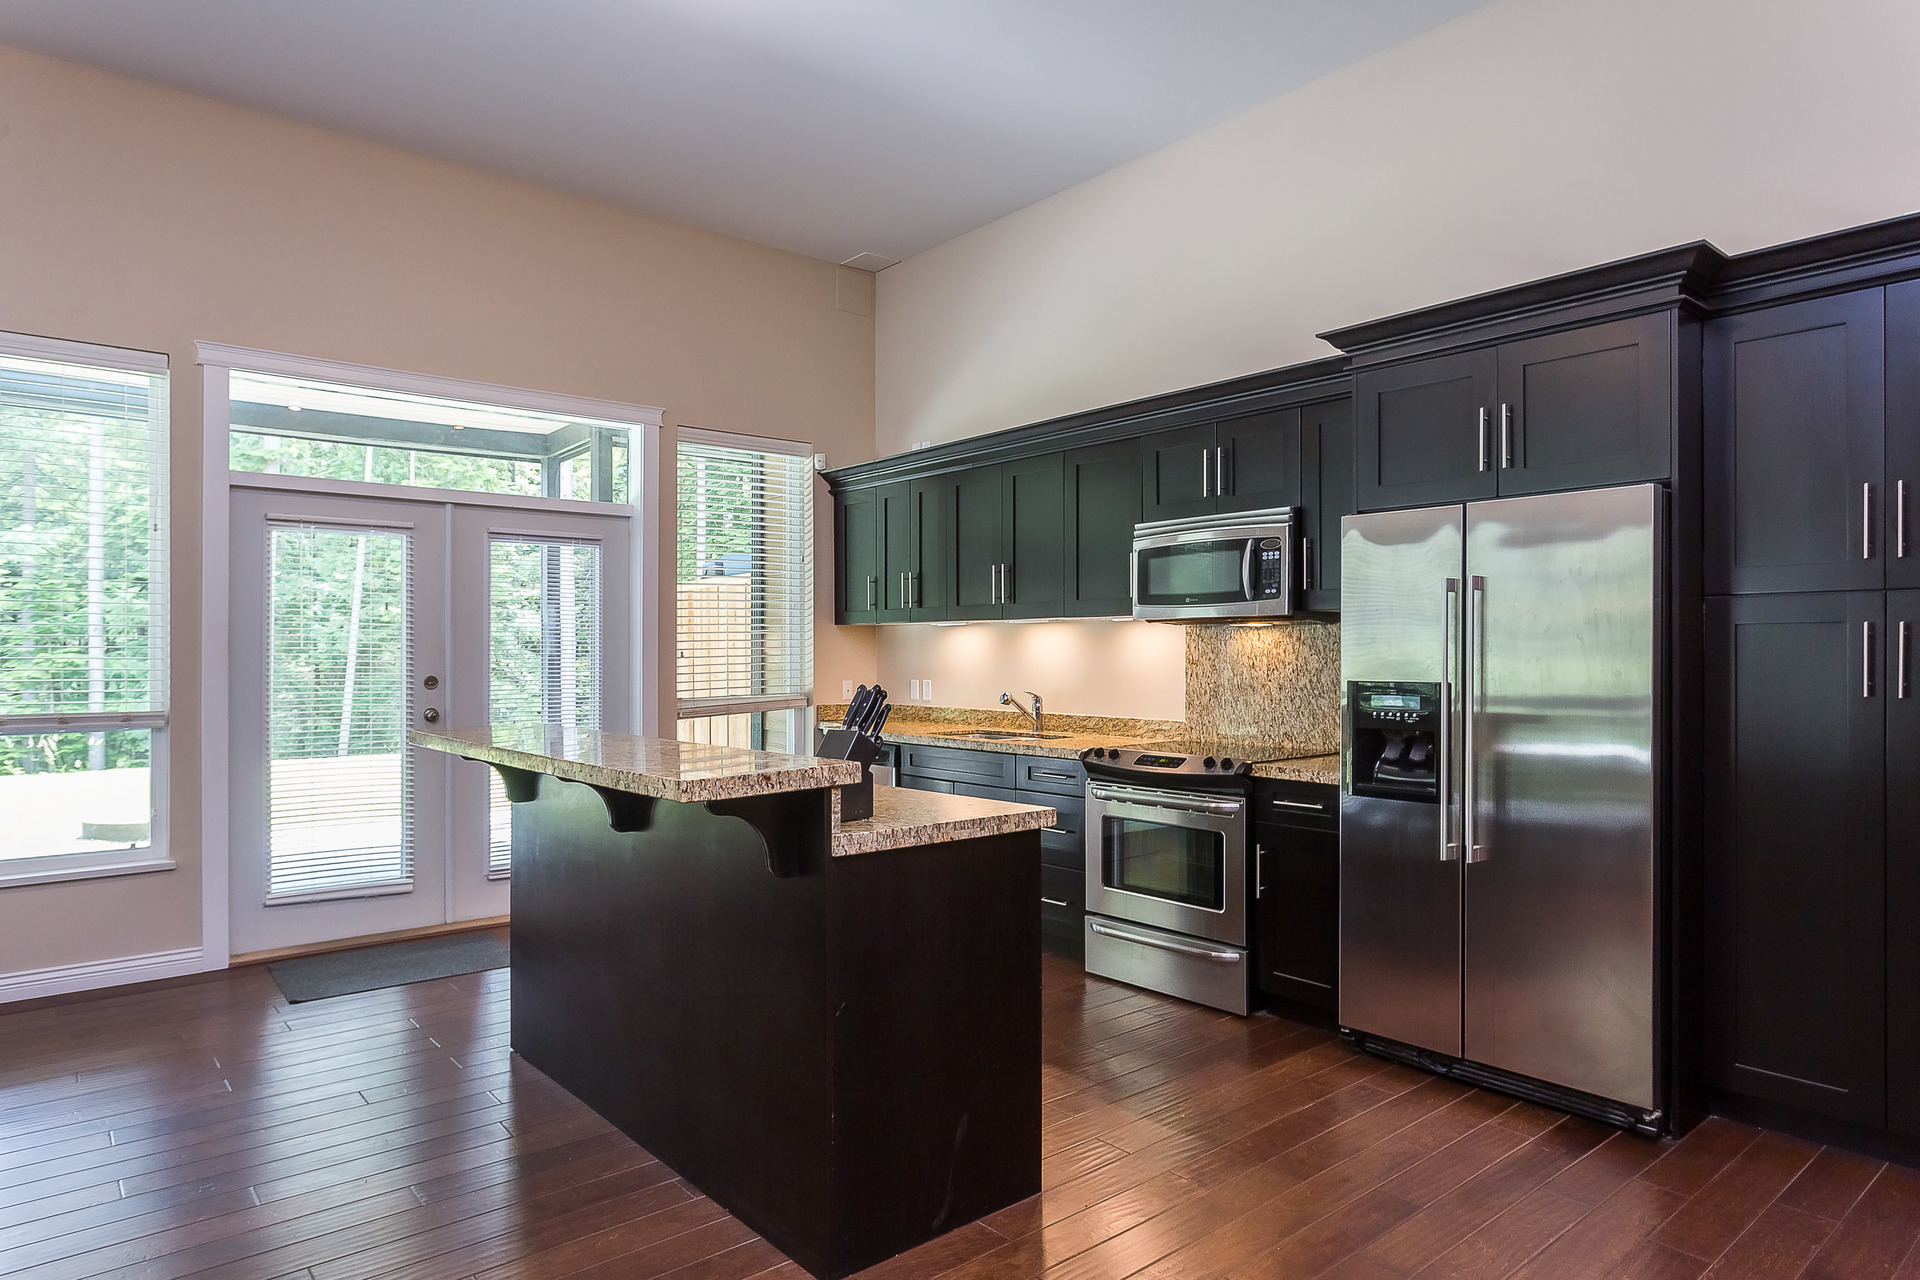 Suite 1-1BR at 1408 Crystal Creek Drive, Anmore, Port Moody